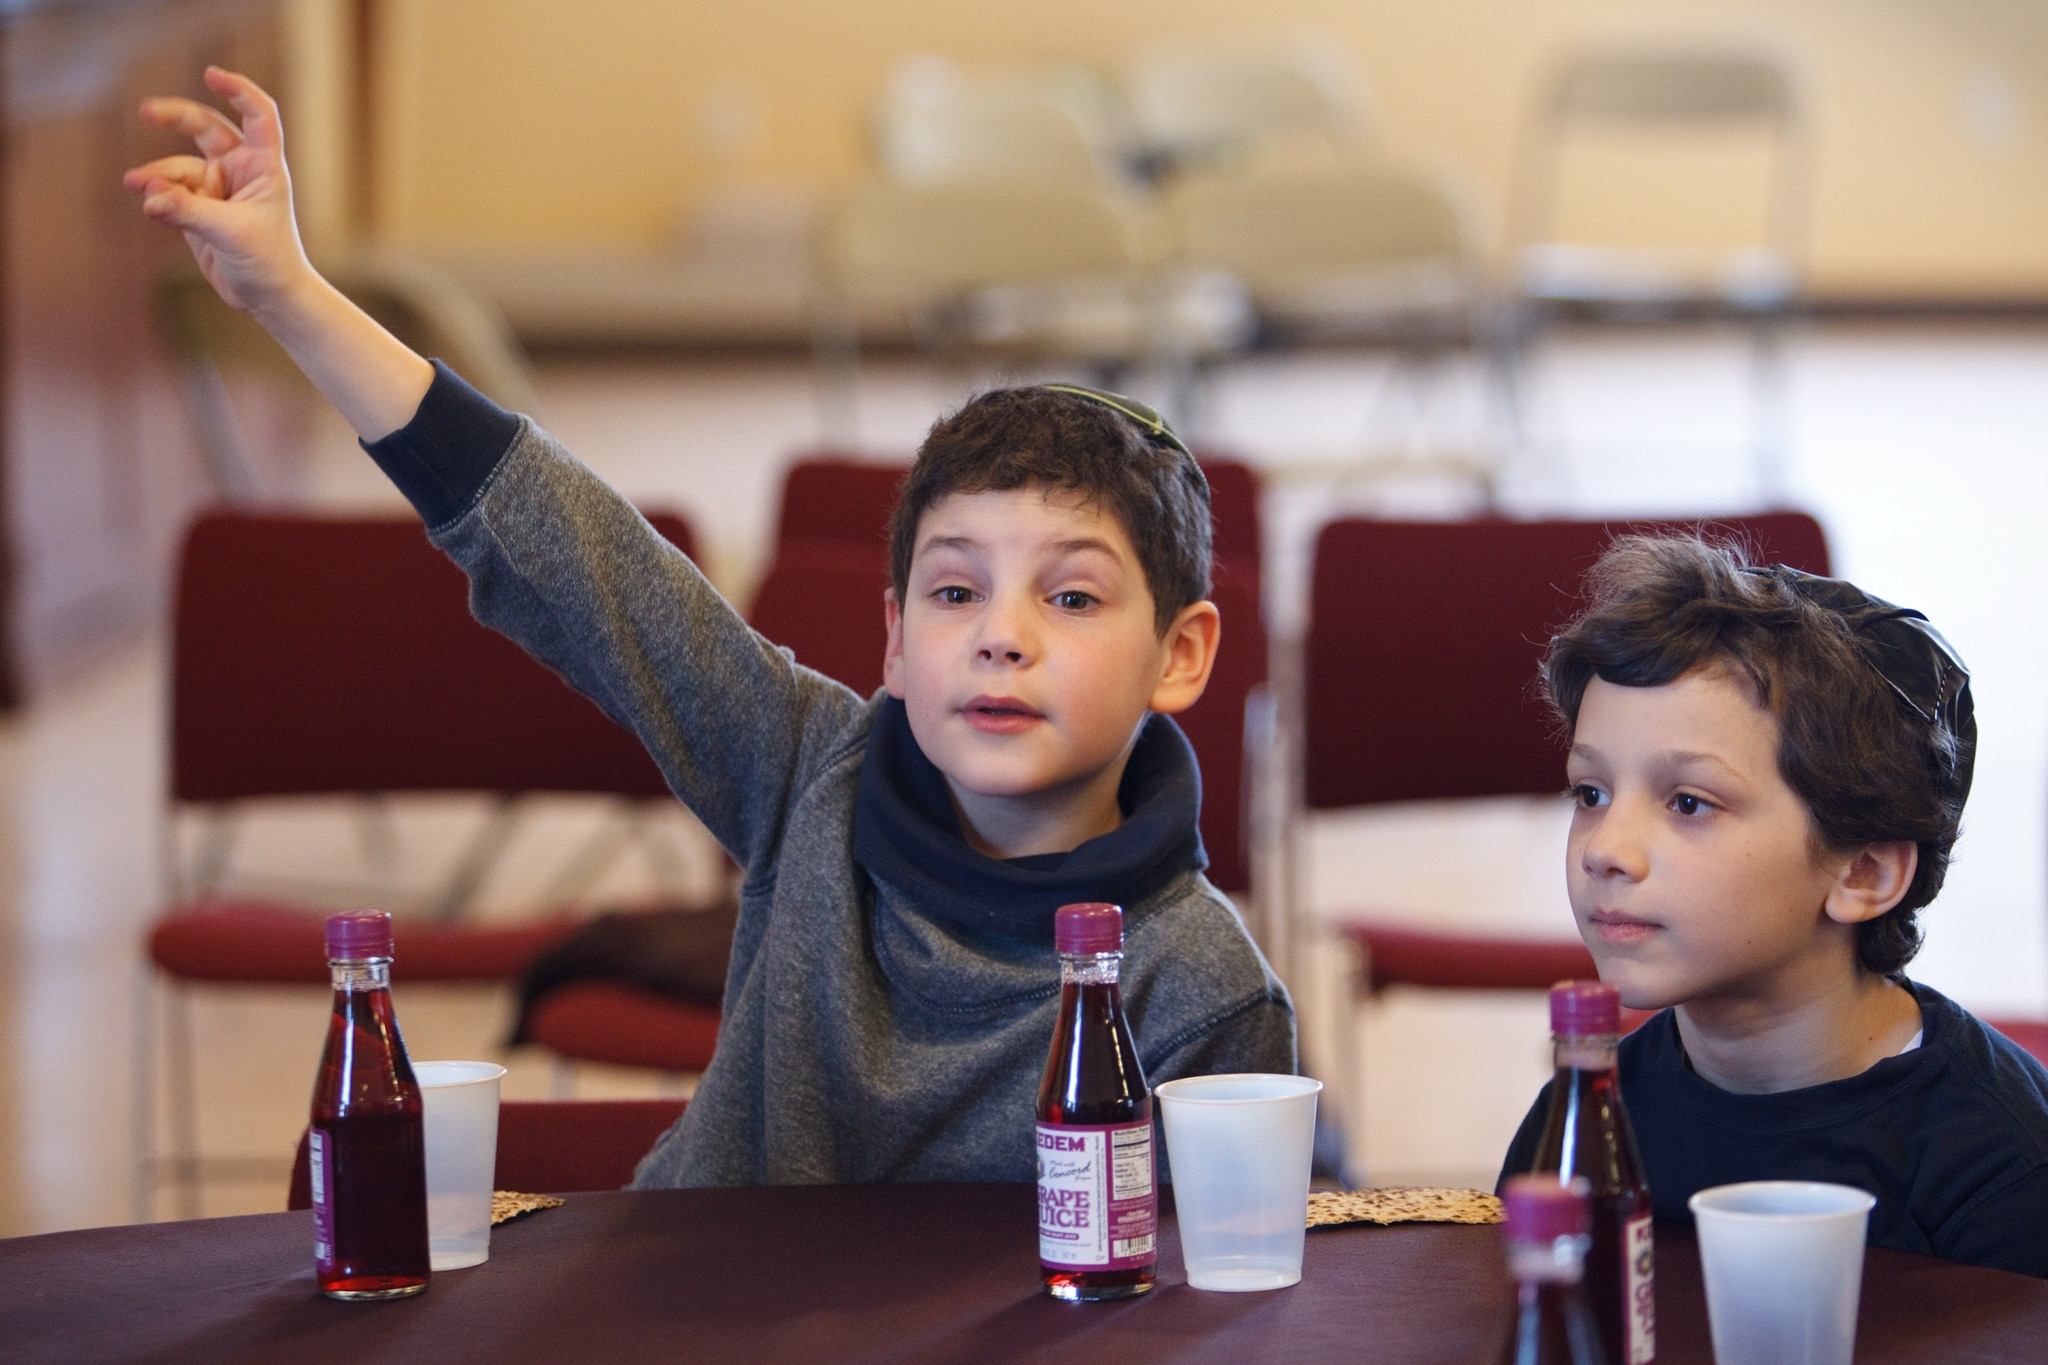 Two boys wearing yarmulkes sitting at table, one raising his hand (© Dina Rudick/The Boston Globe/Getty Images)